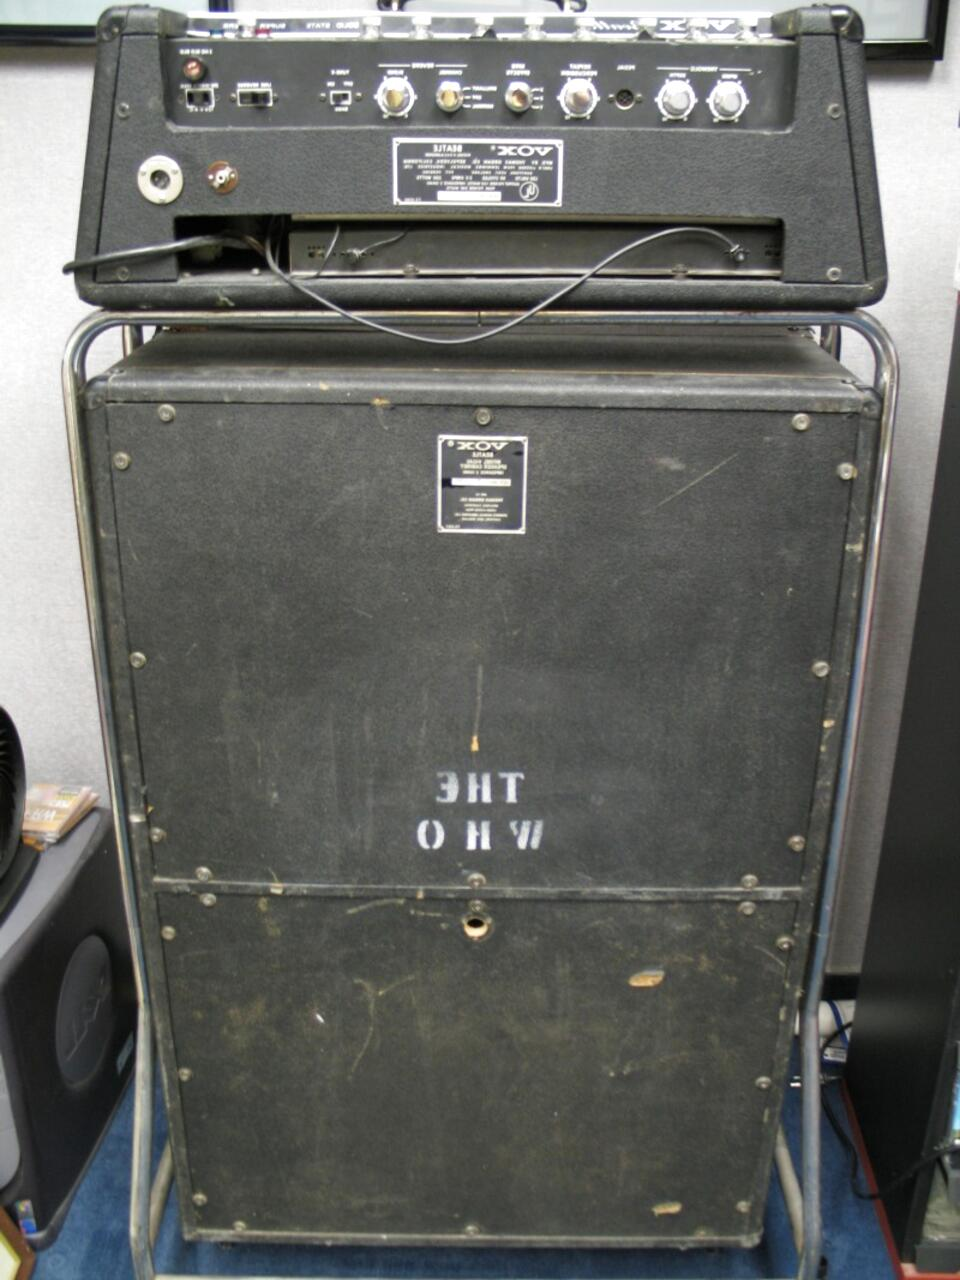 vox amplifiers for sale